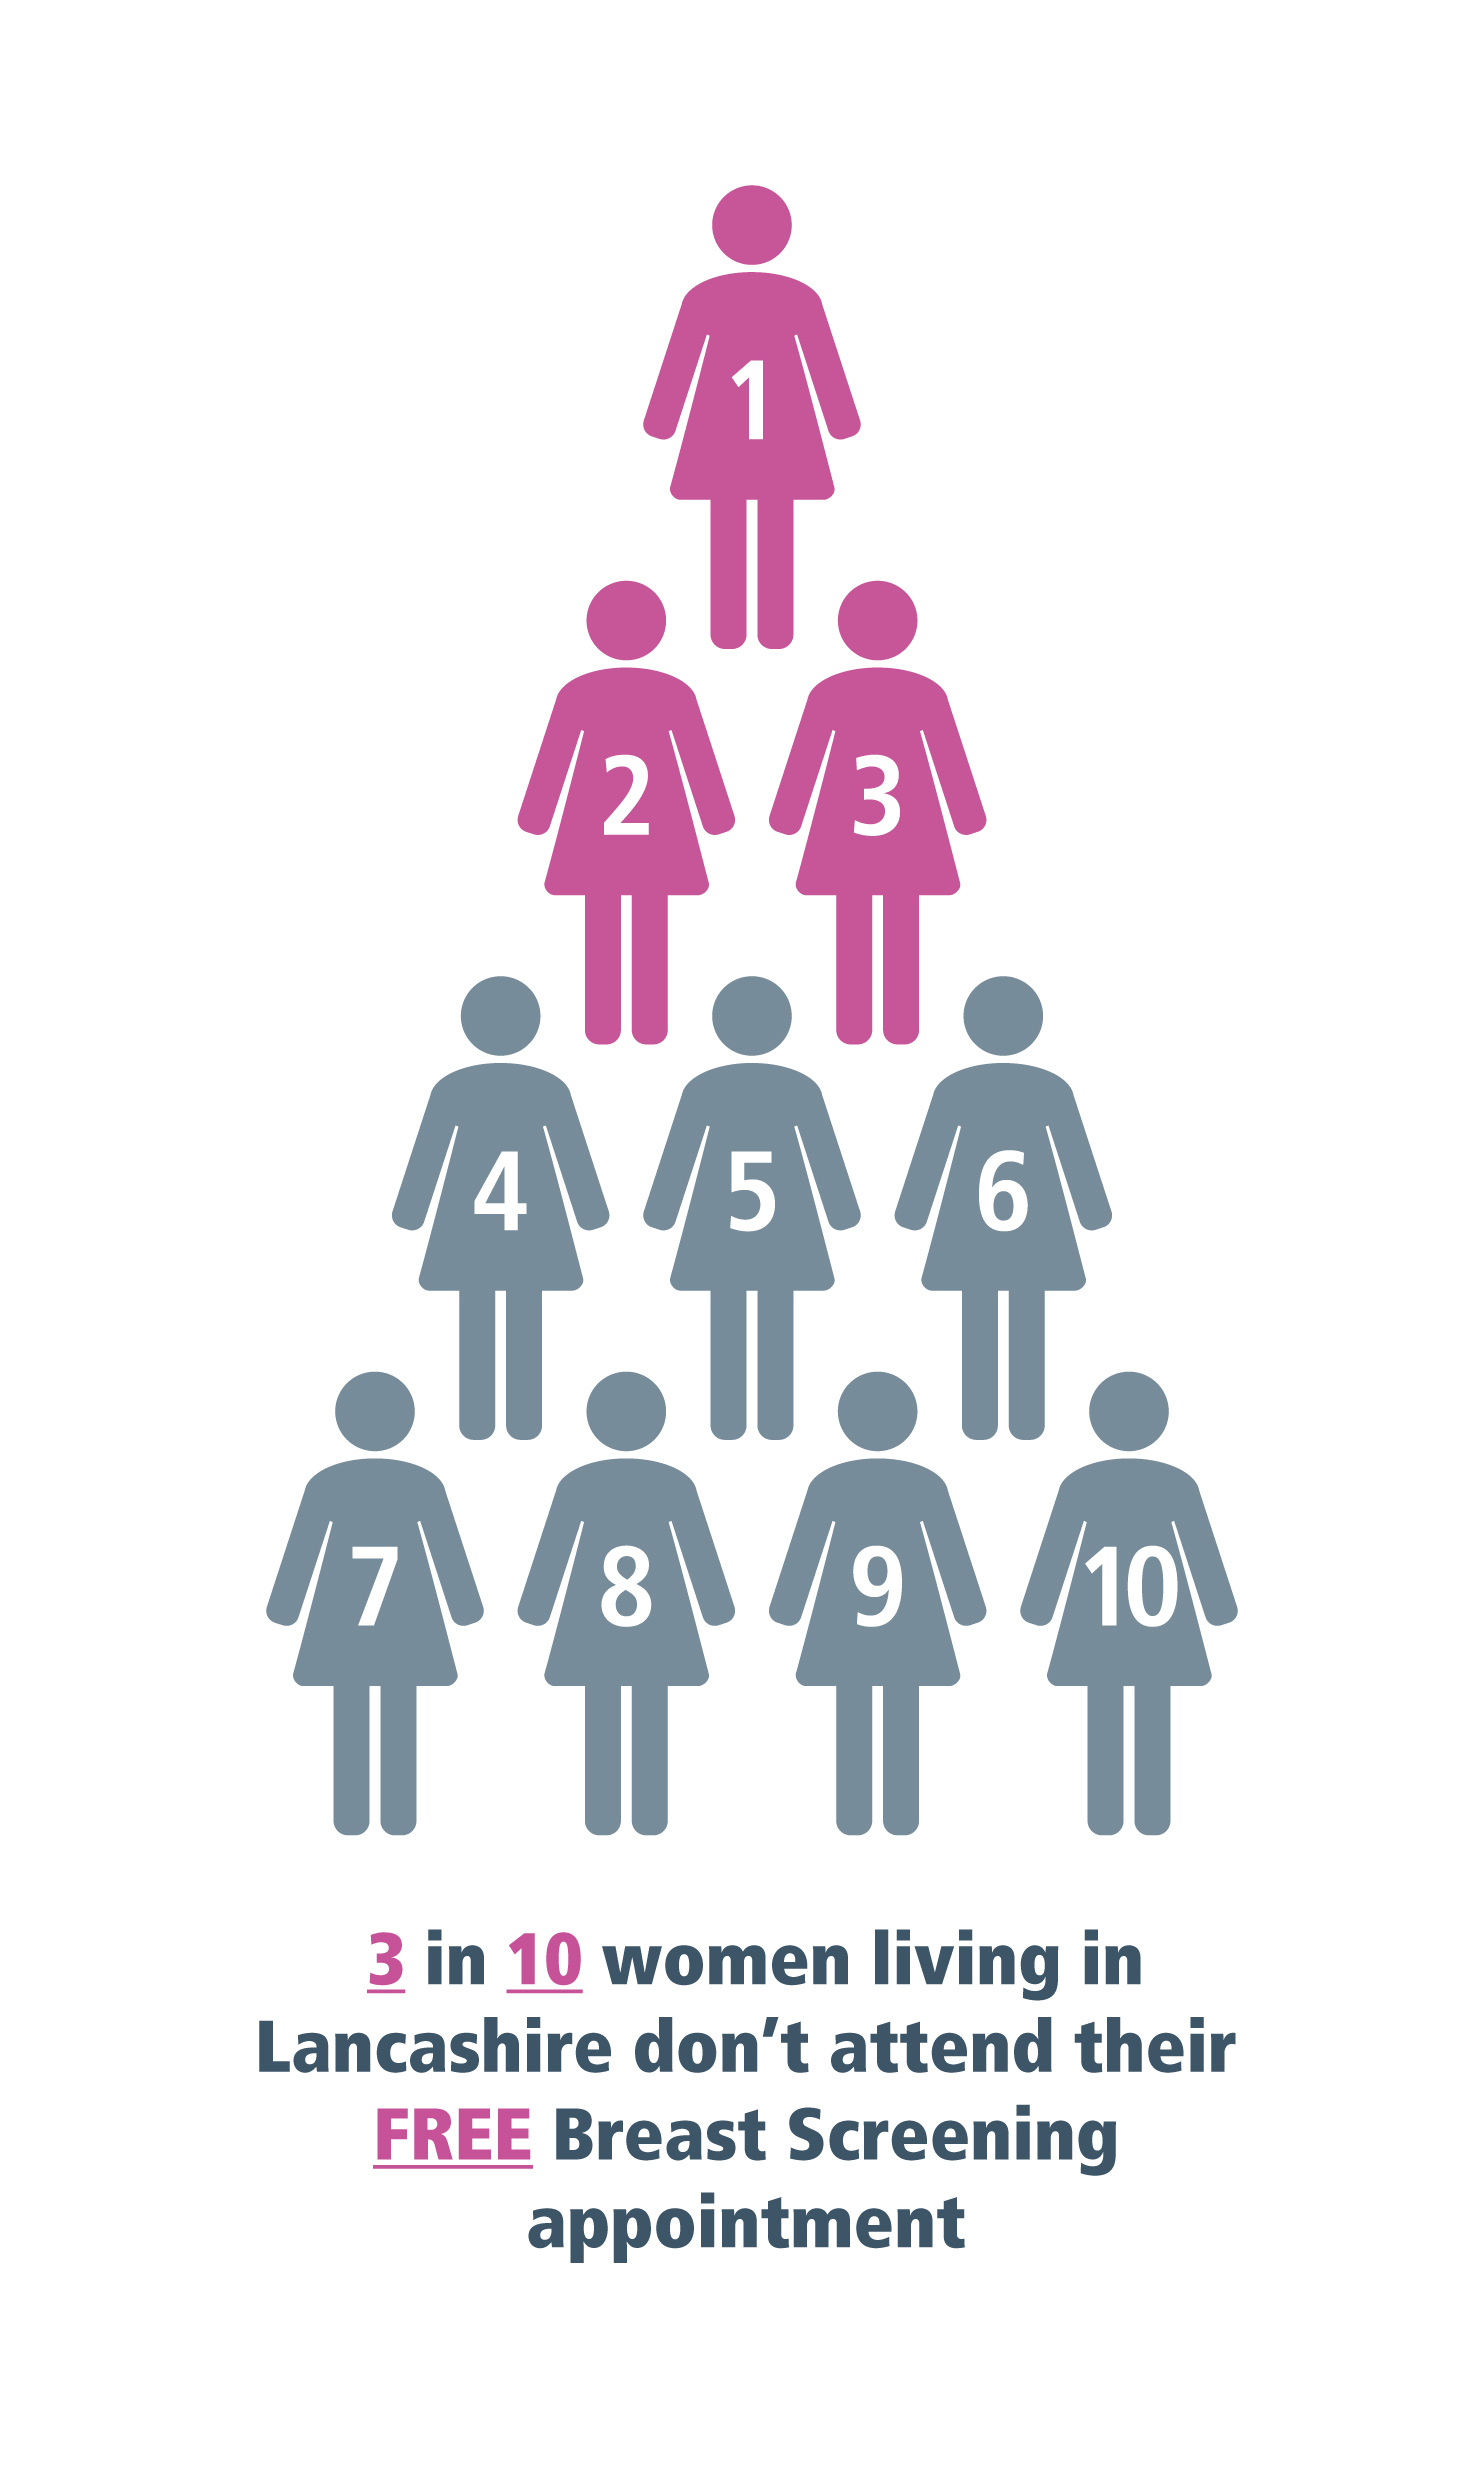 3 in 10 women living in Lancashire do not attend their free breast screening appointment